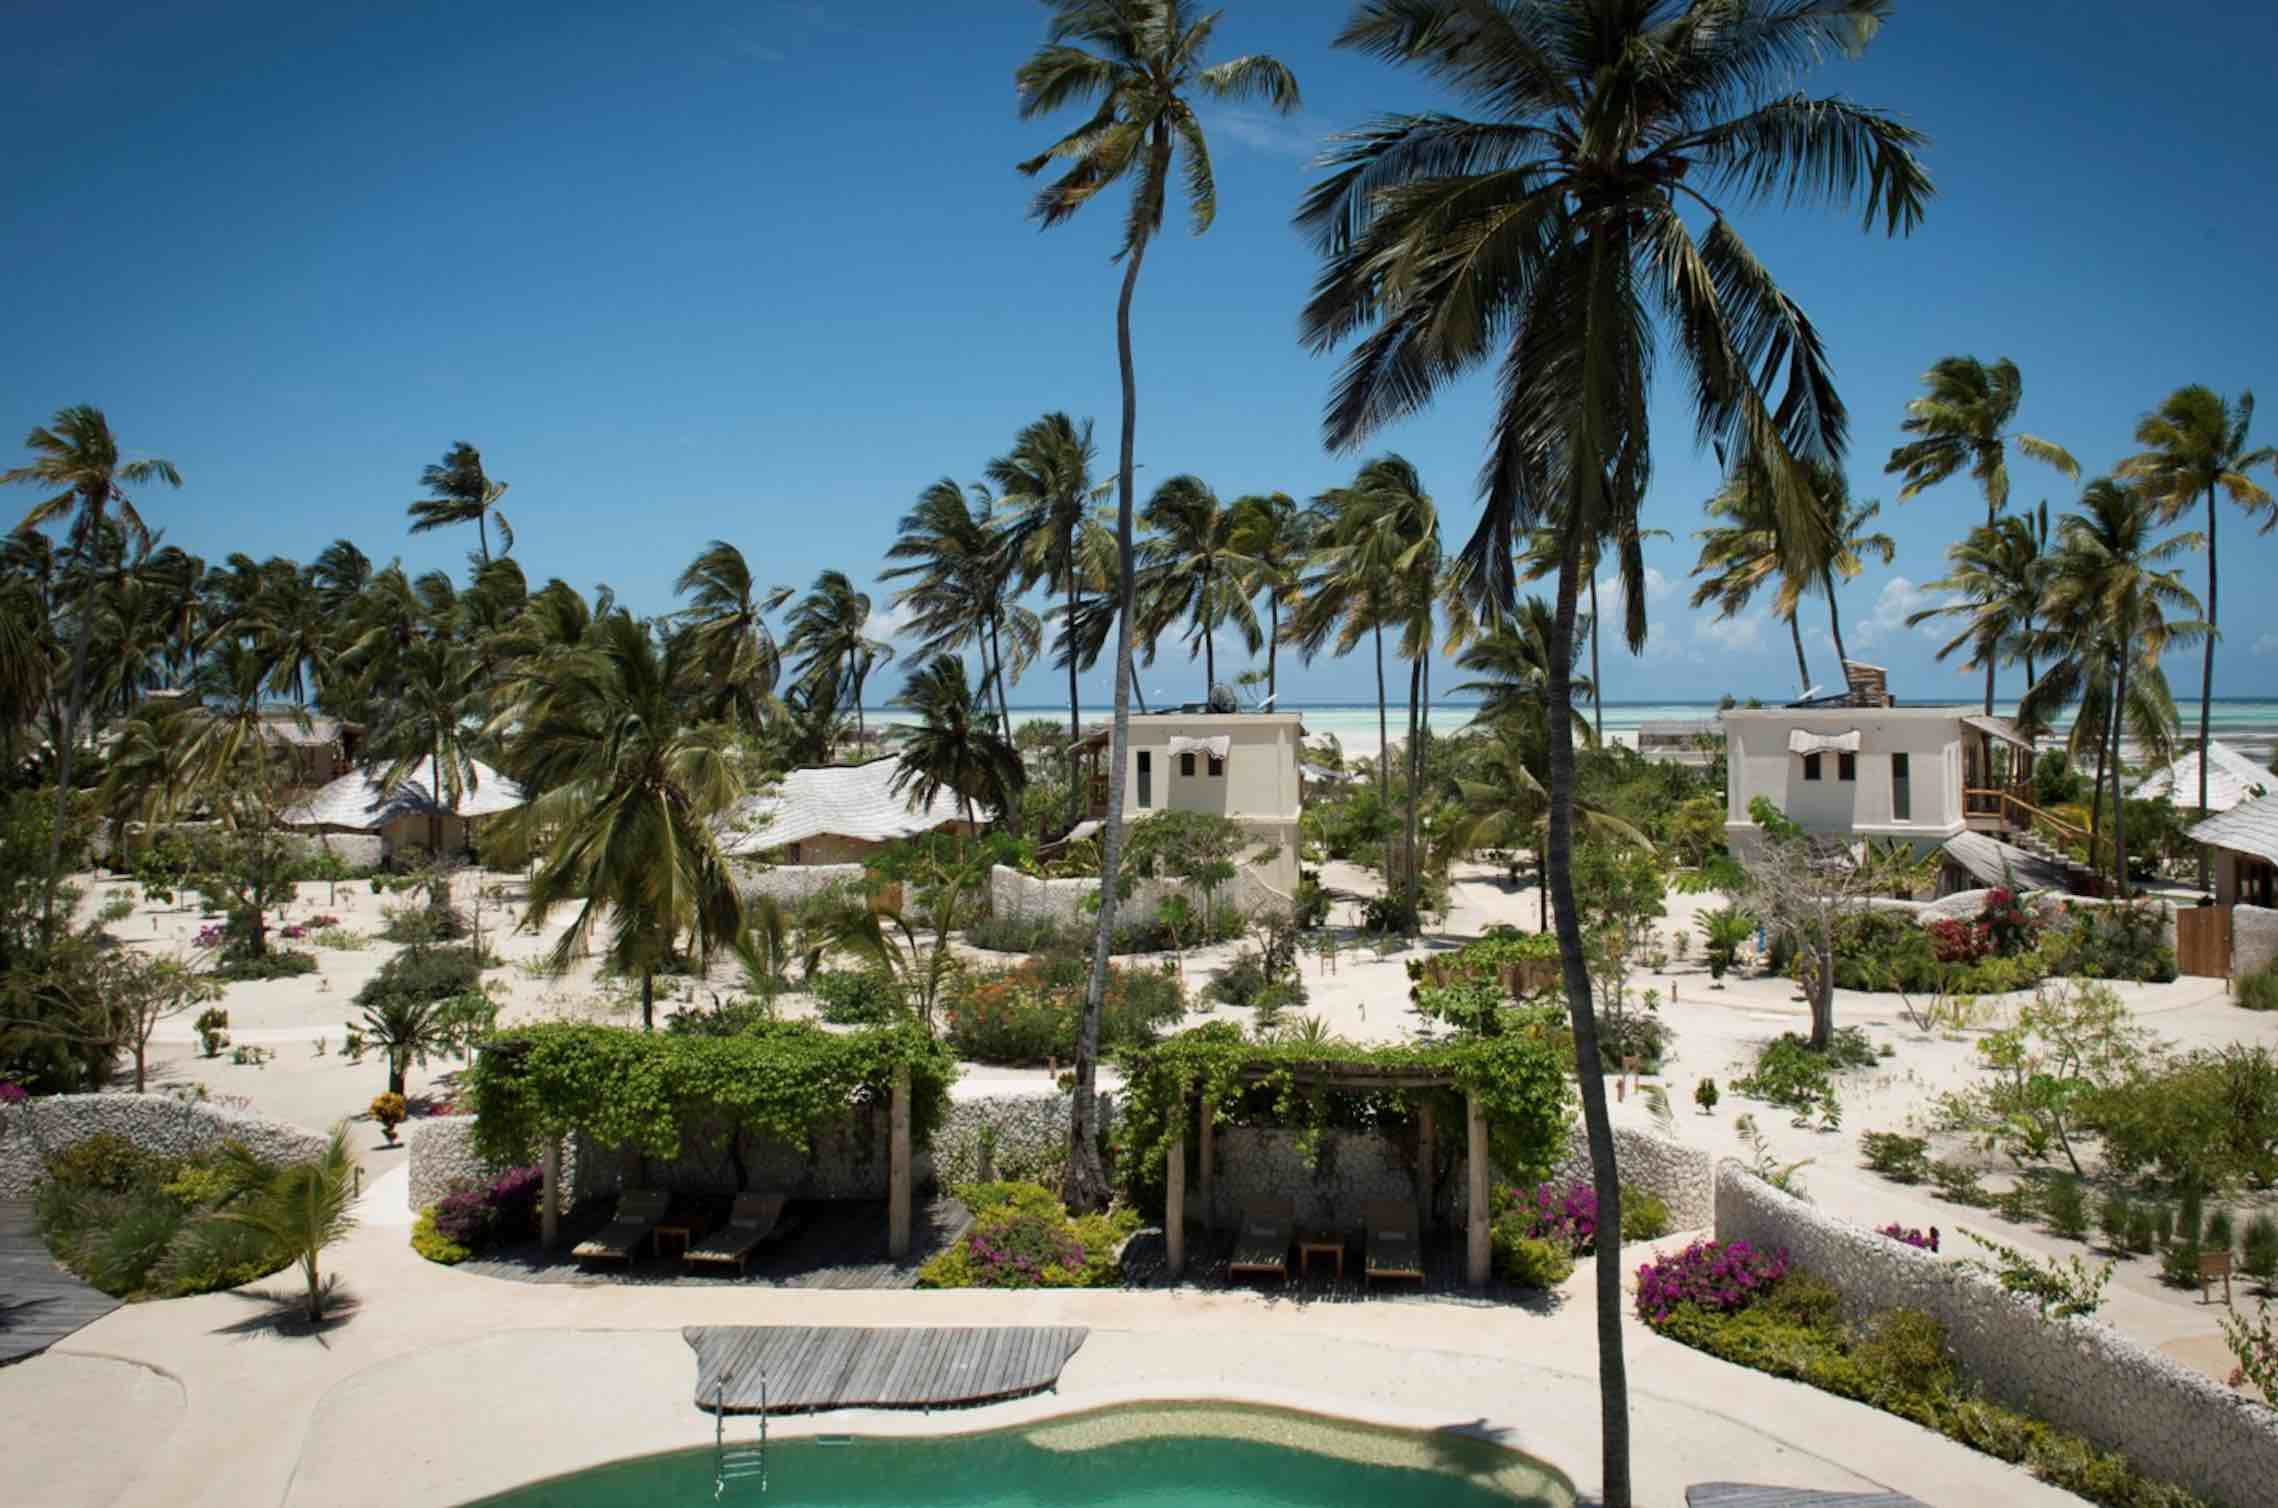 Zanzibar Hotel by the Beach - Zanzibar White Sand Luxury Villas & Spa5.jpg